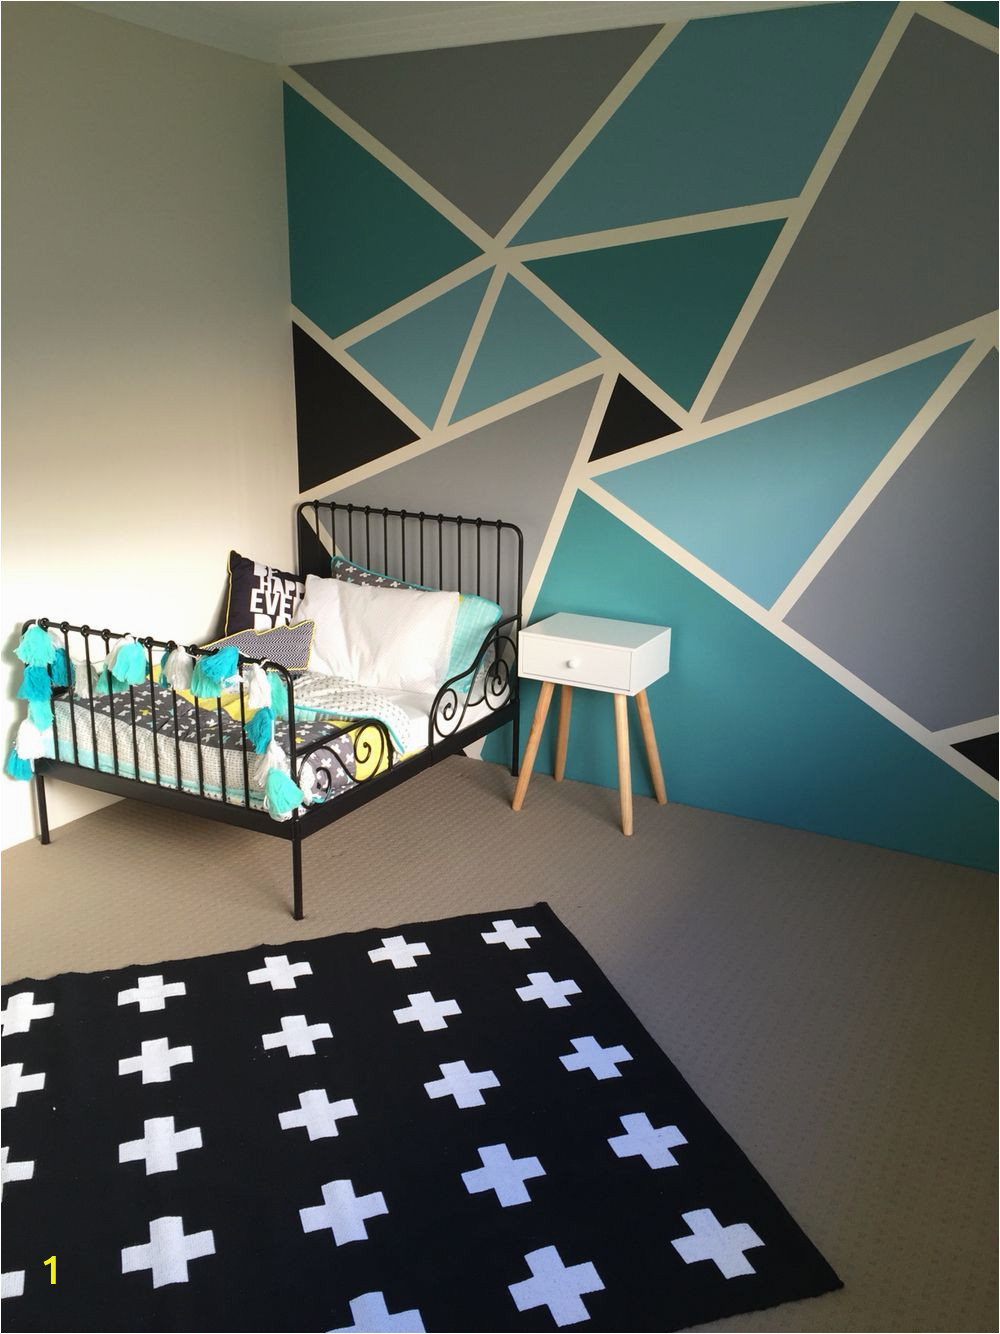 How to Paint A Geometric Wall Mural Pin On Kids Babies and Such